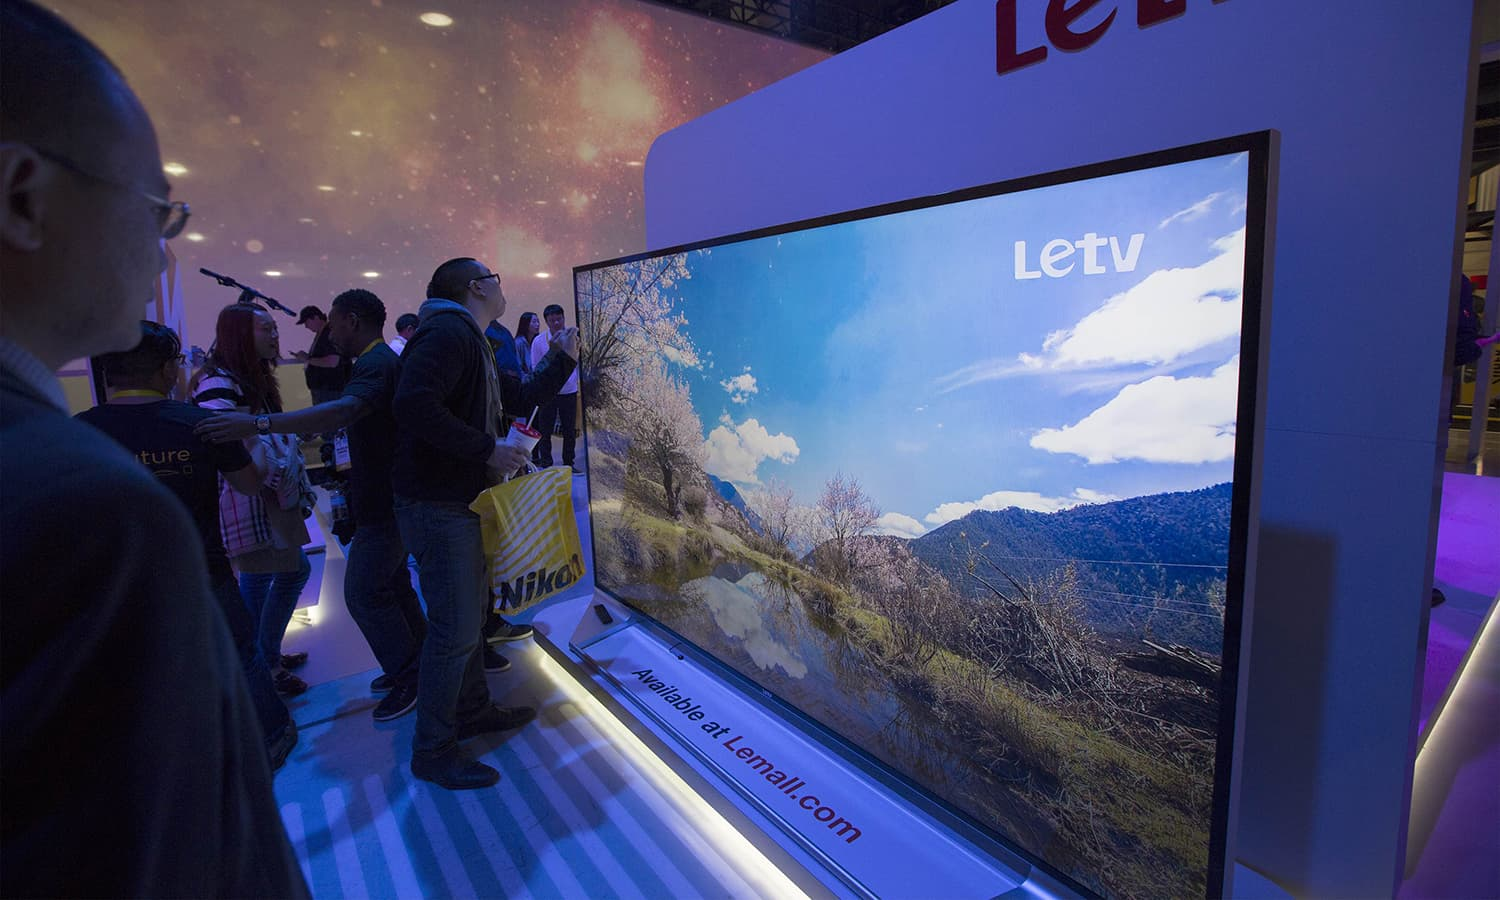 People look at the Letv 120-inch UHD 4K panel at the CES 2016 Consumer Electronics Show. — AFP